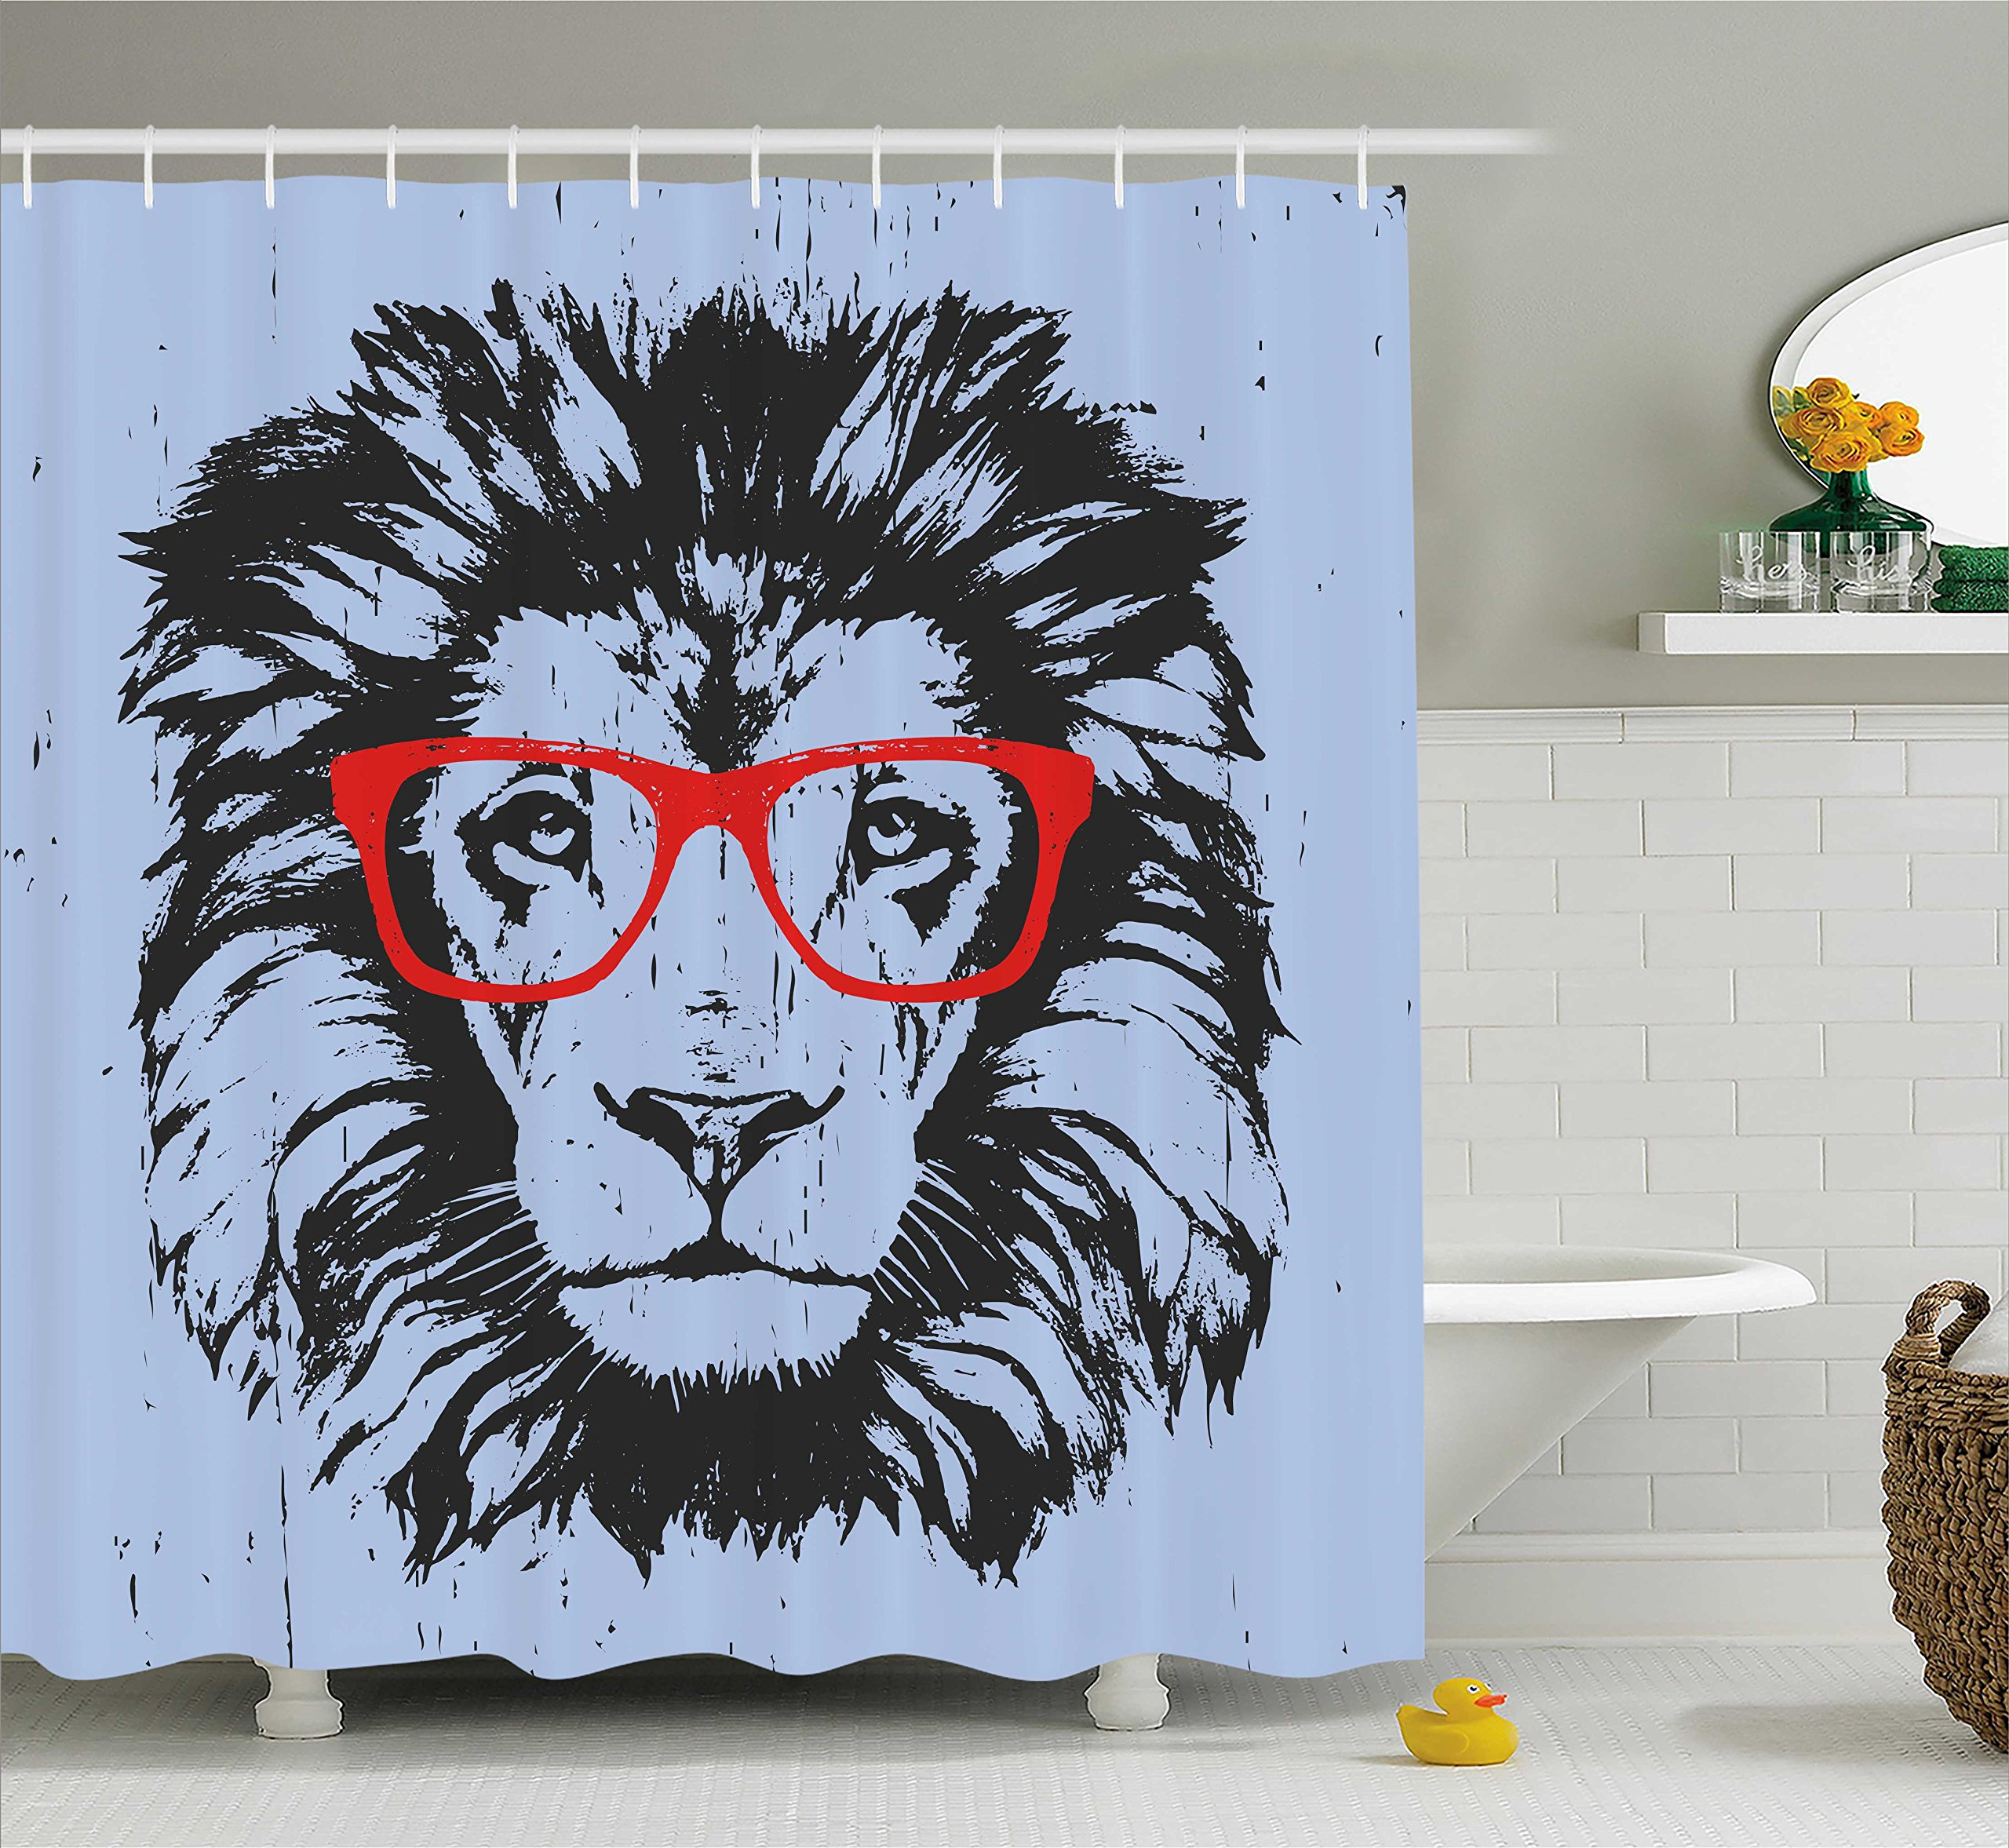 Ambesonne Animal Shower Curtain, Grunge Lion Portrait with Hipster Glasses Nerd Humor Comic King Illustration, Fabric Bathroom Decor Set with Hooks, 70 Inches, Blue Red Charcoal Grey